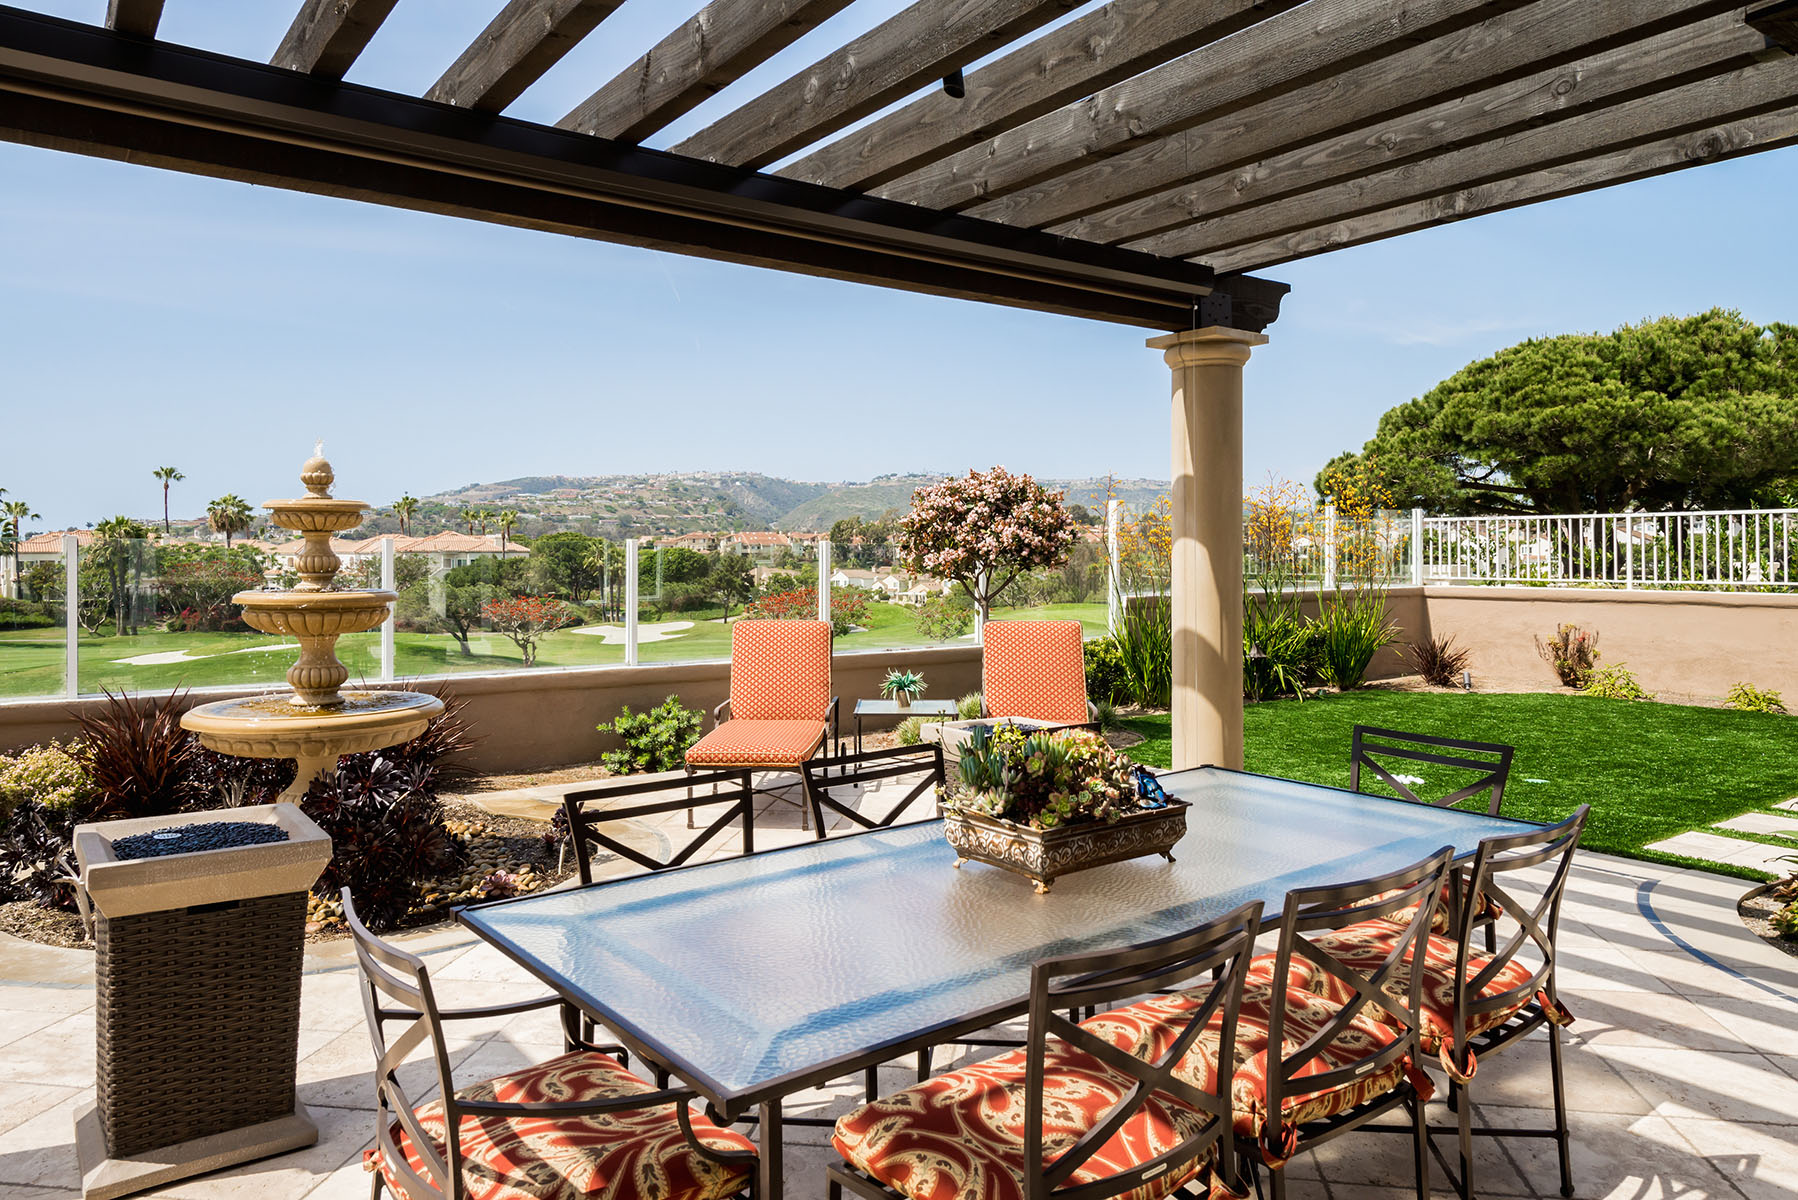 Single Family Home for Sale at Dana Point 17 Marbella Dana Point, California 92629 United States